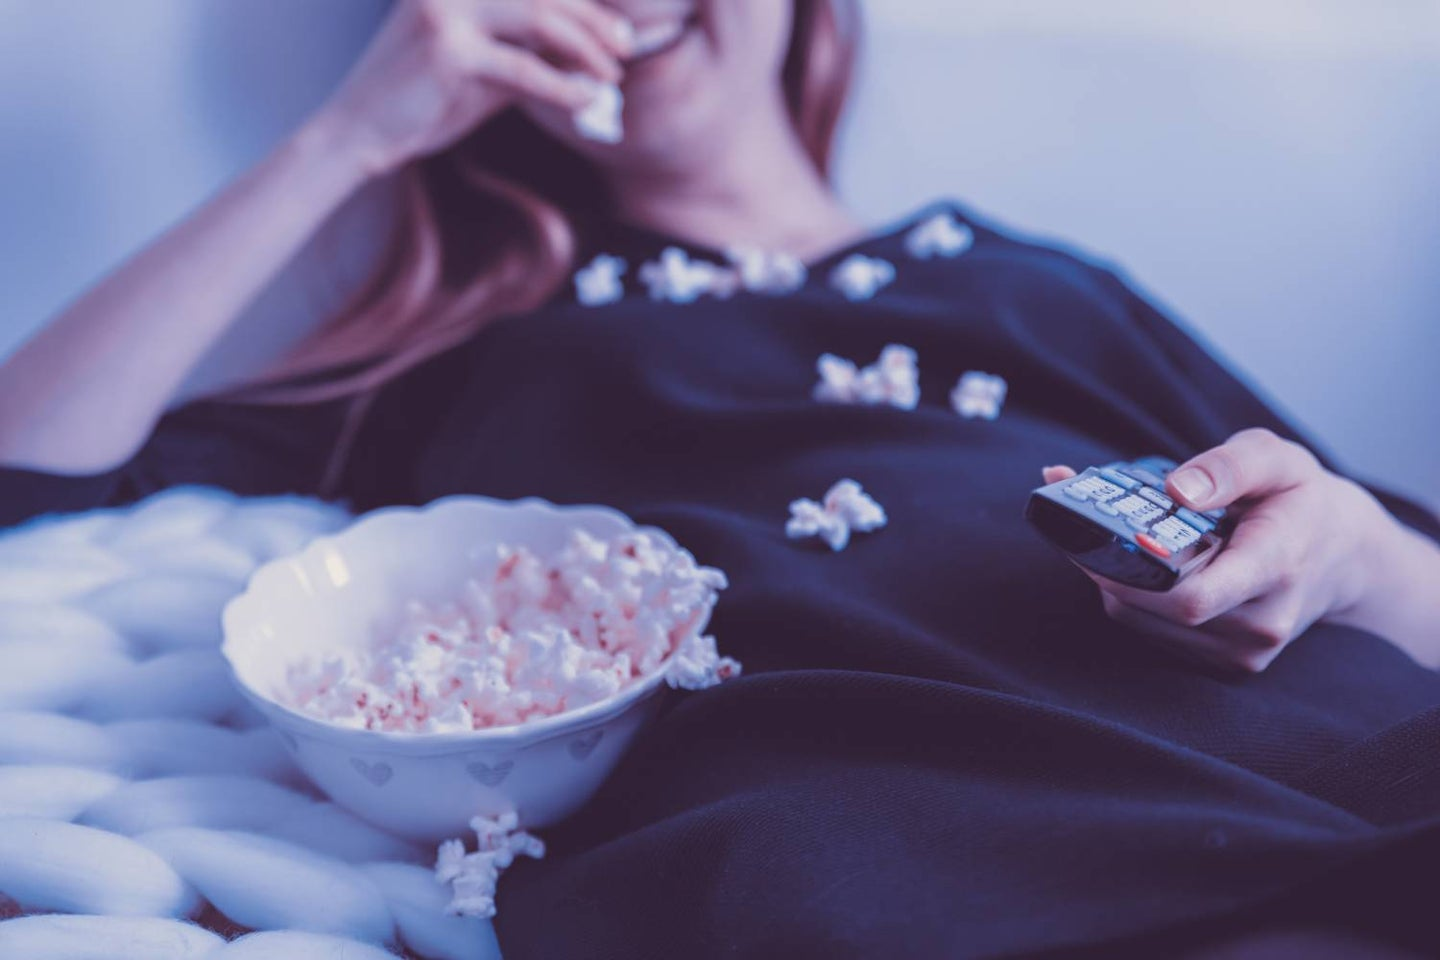 Person watching TV and eating pop corn